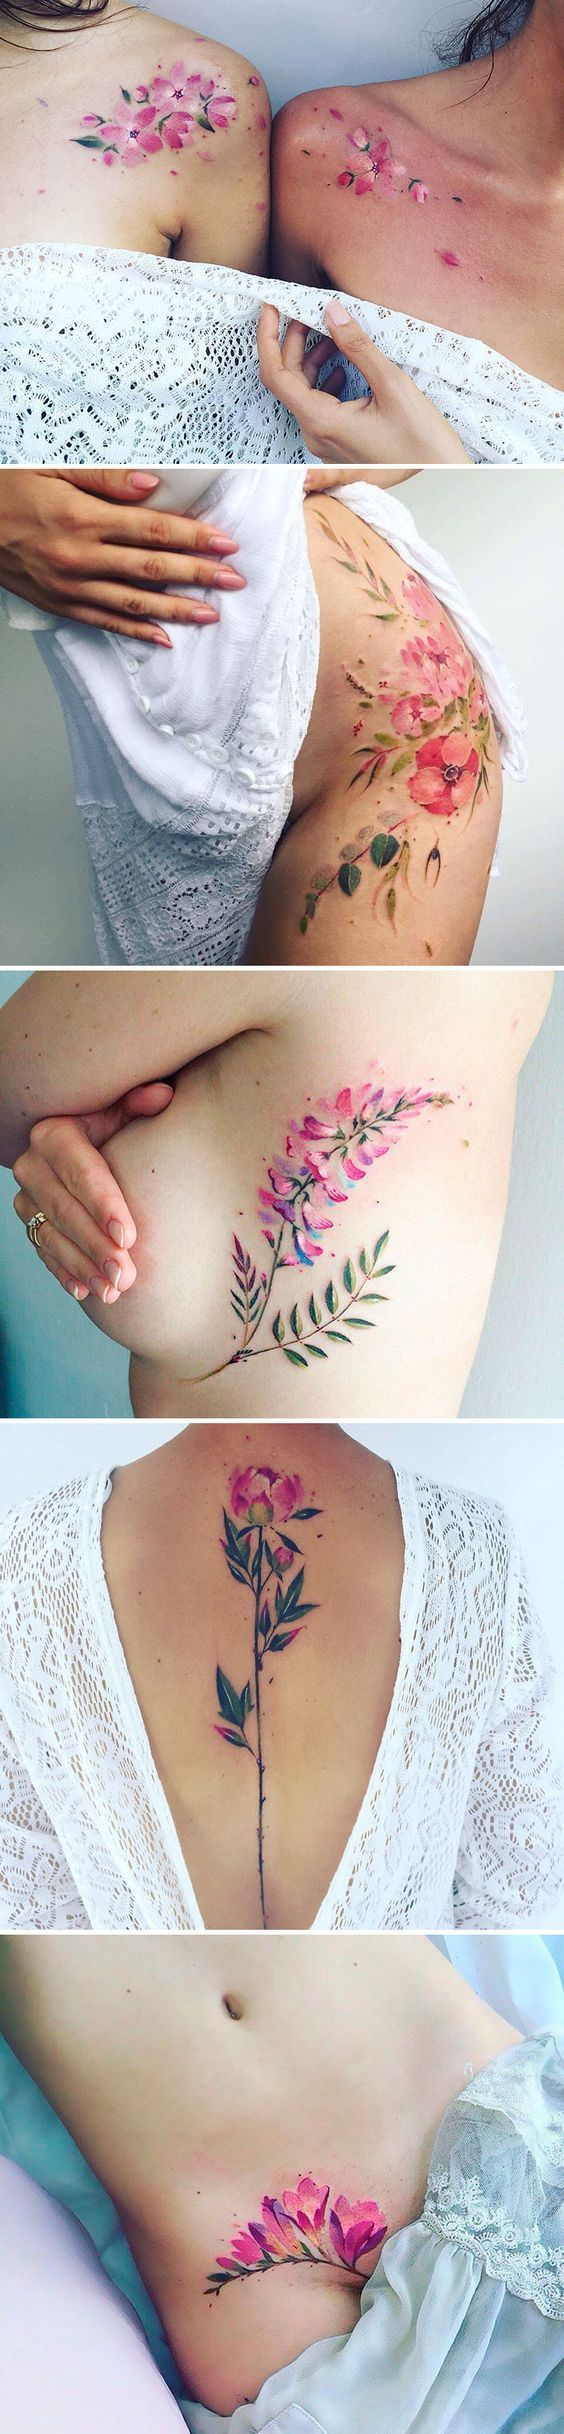 Pink flower tattoos. Positions nice.